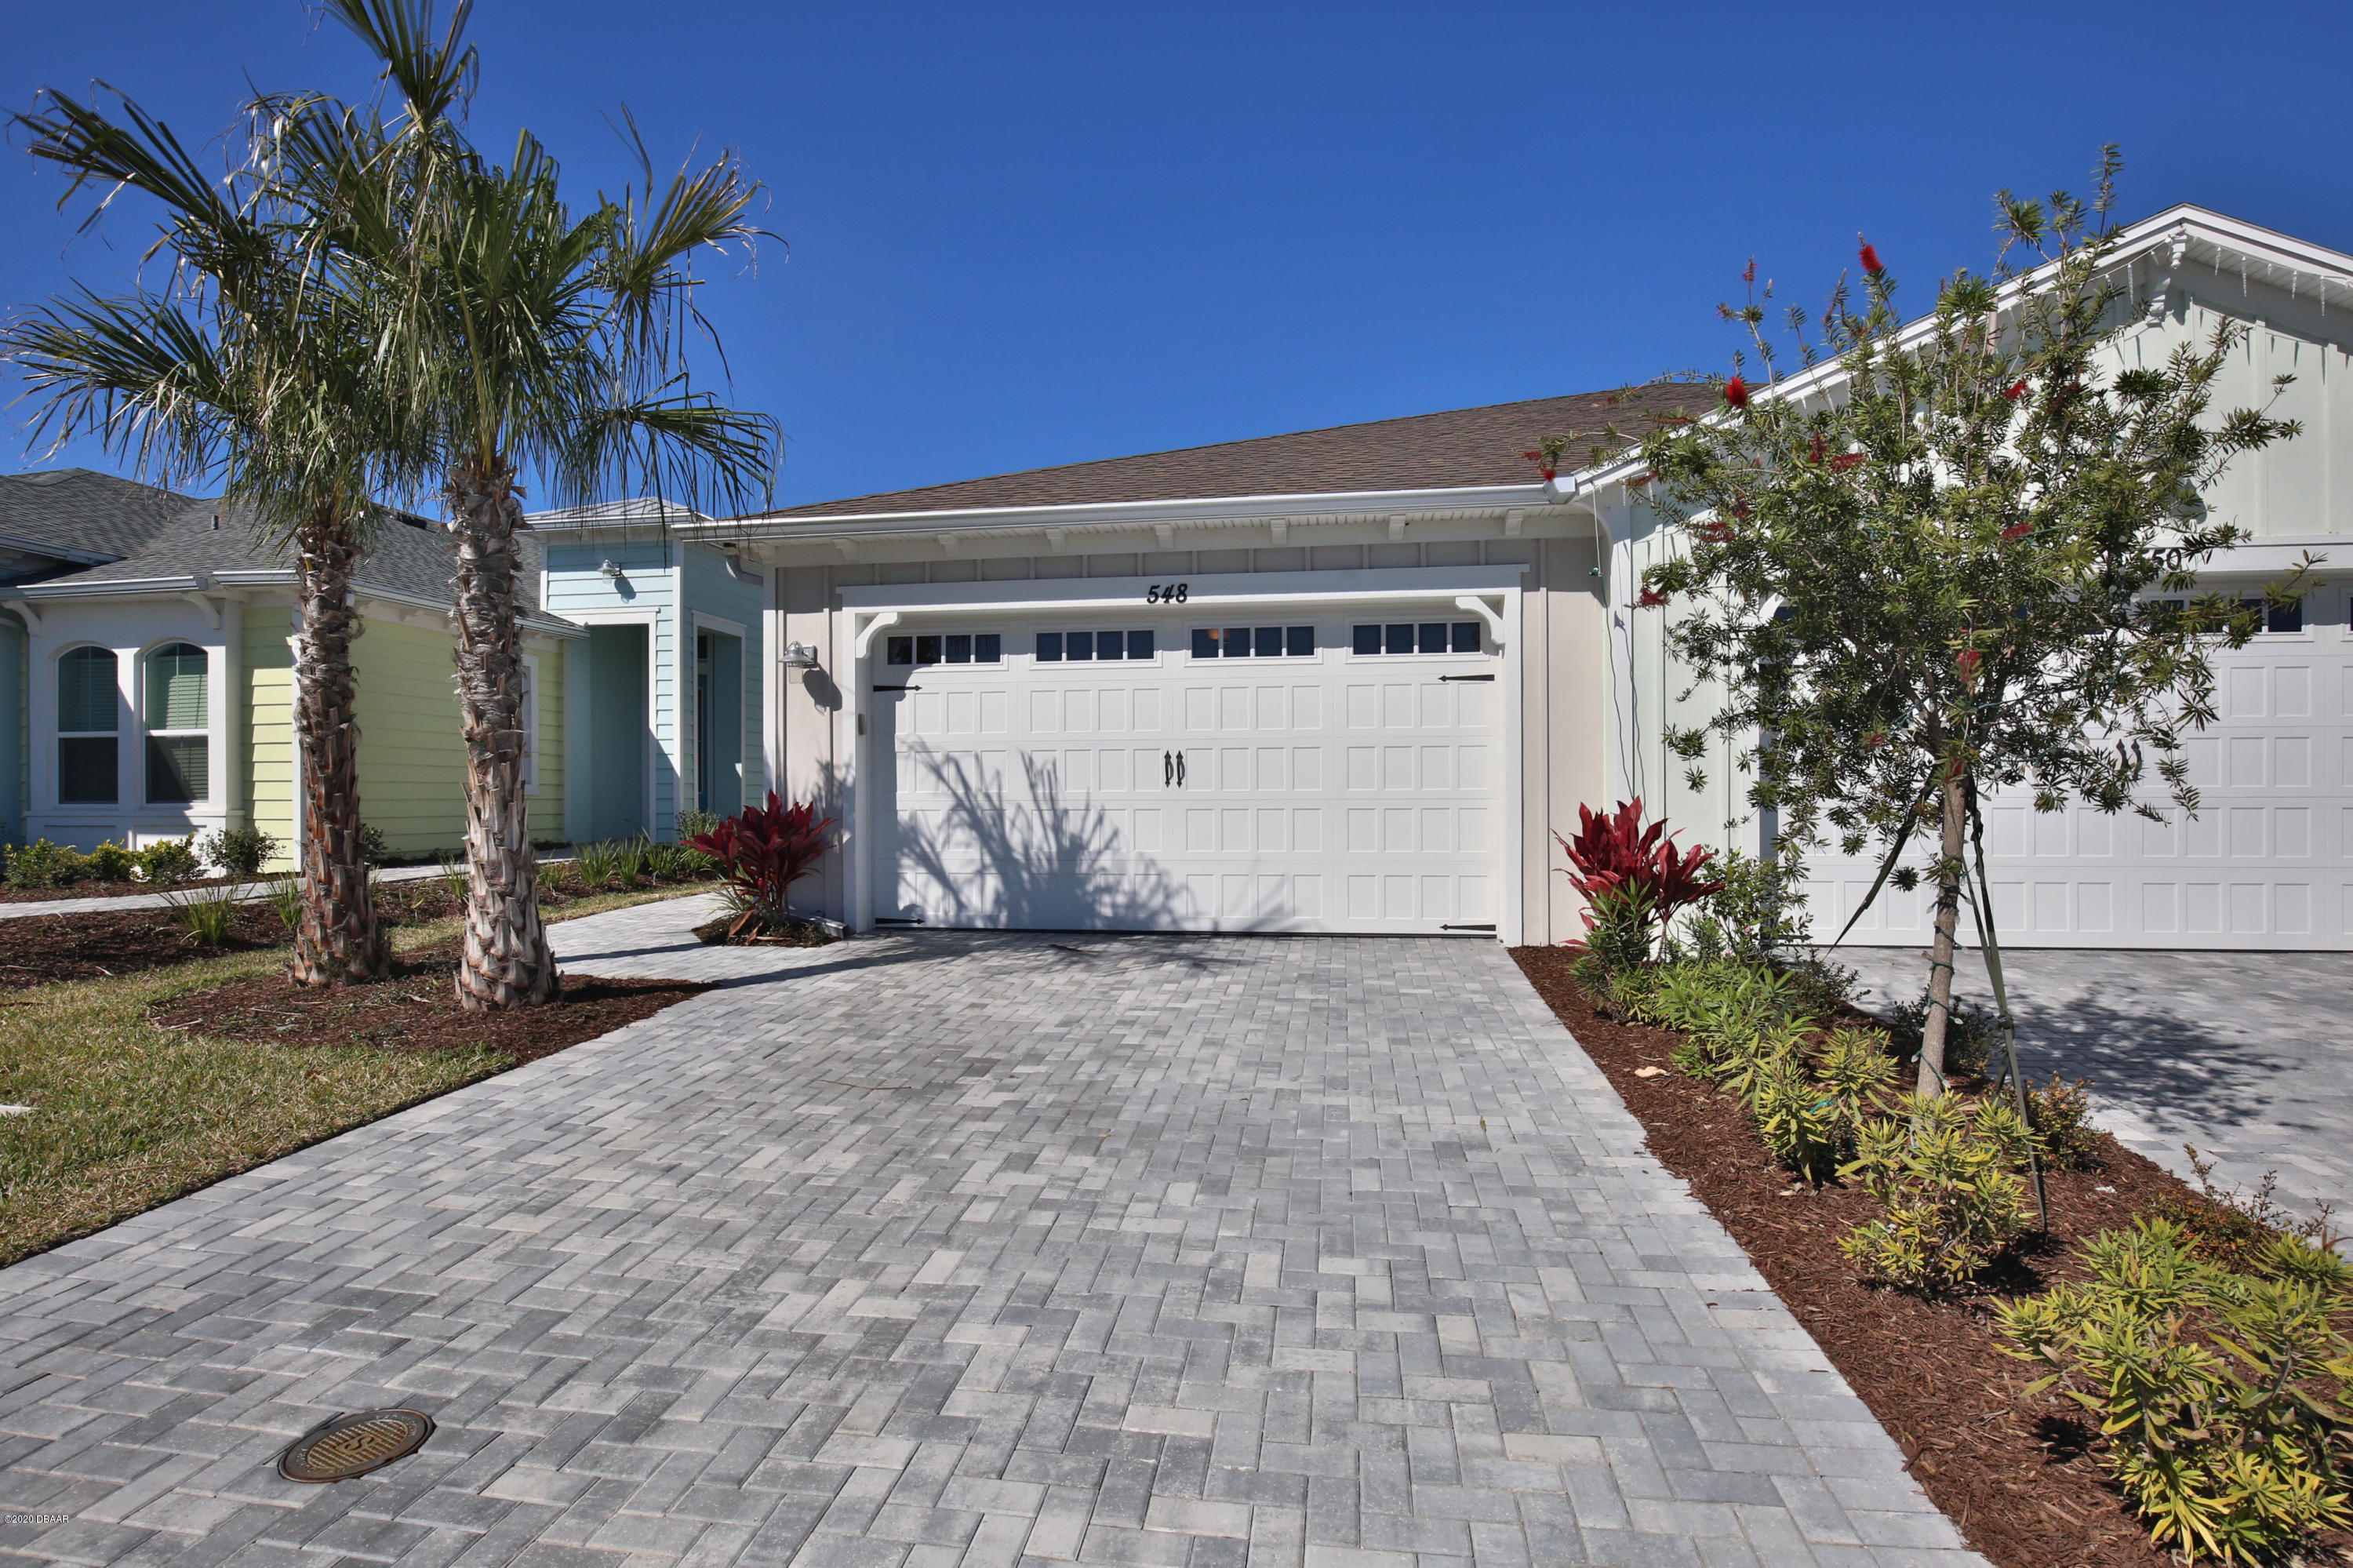 Photo of 548 Lost Shaker Way, Daytona Beach, FL 32124